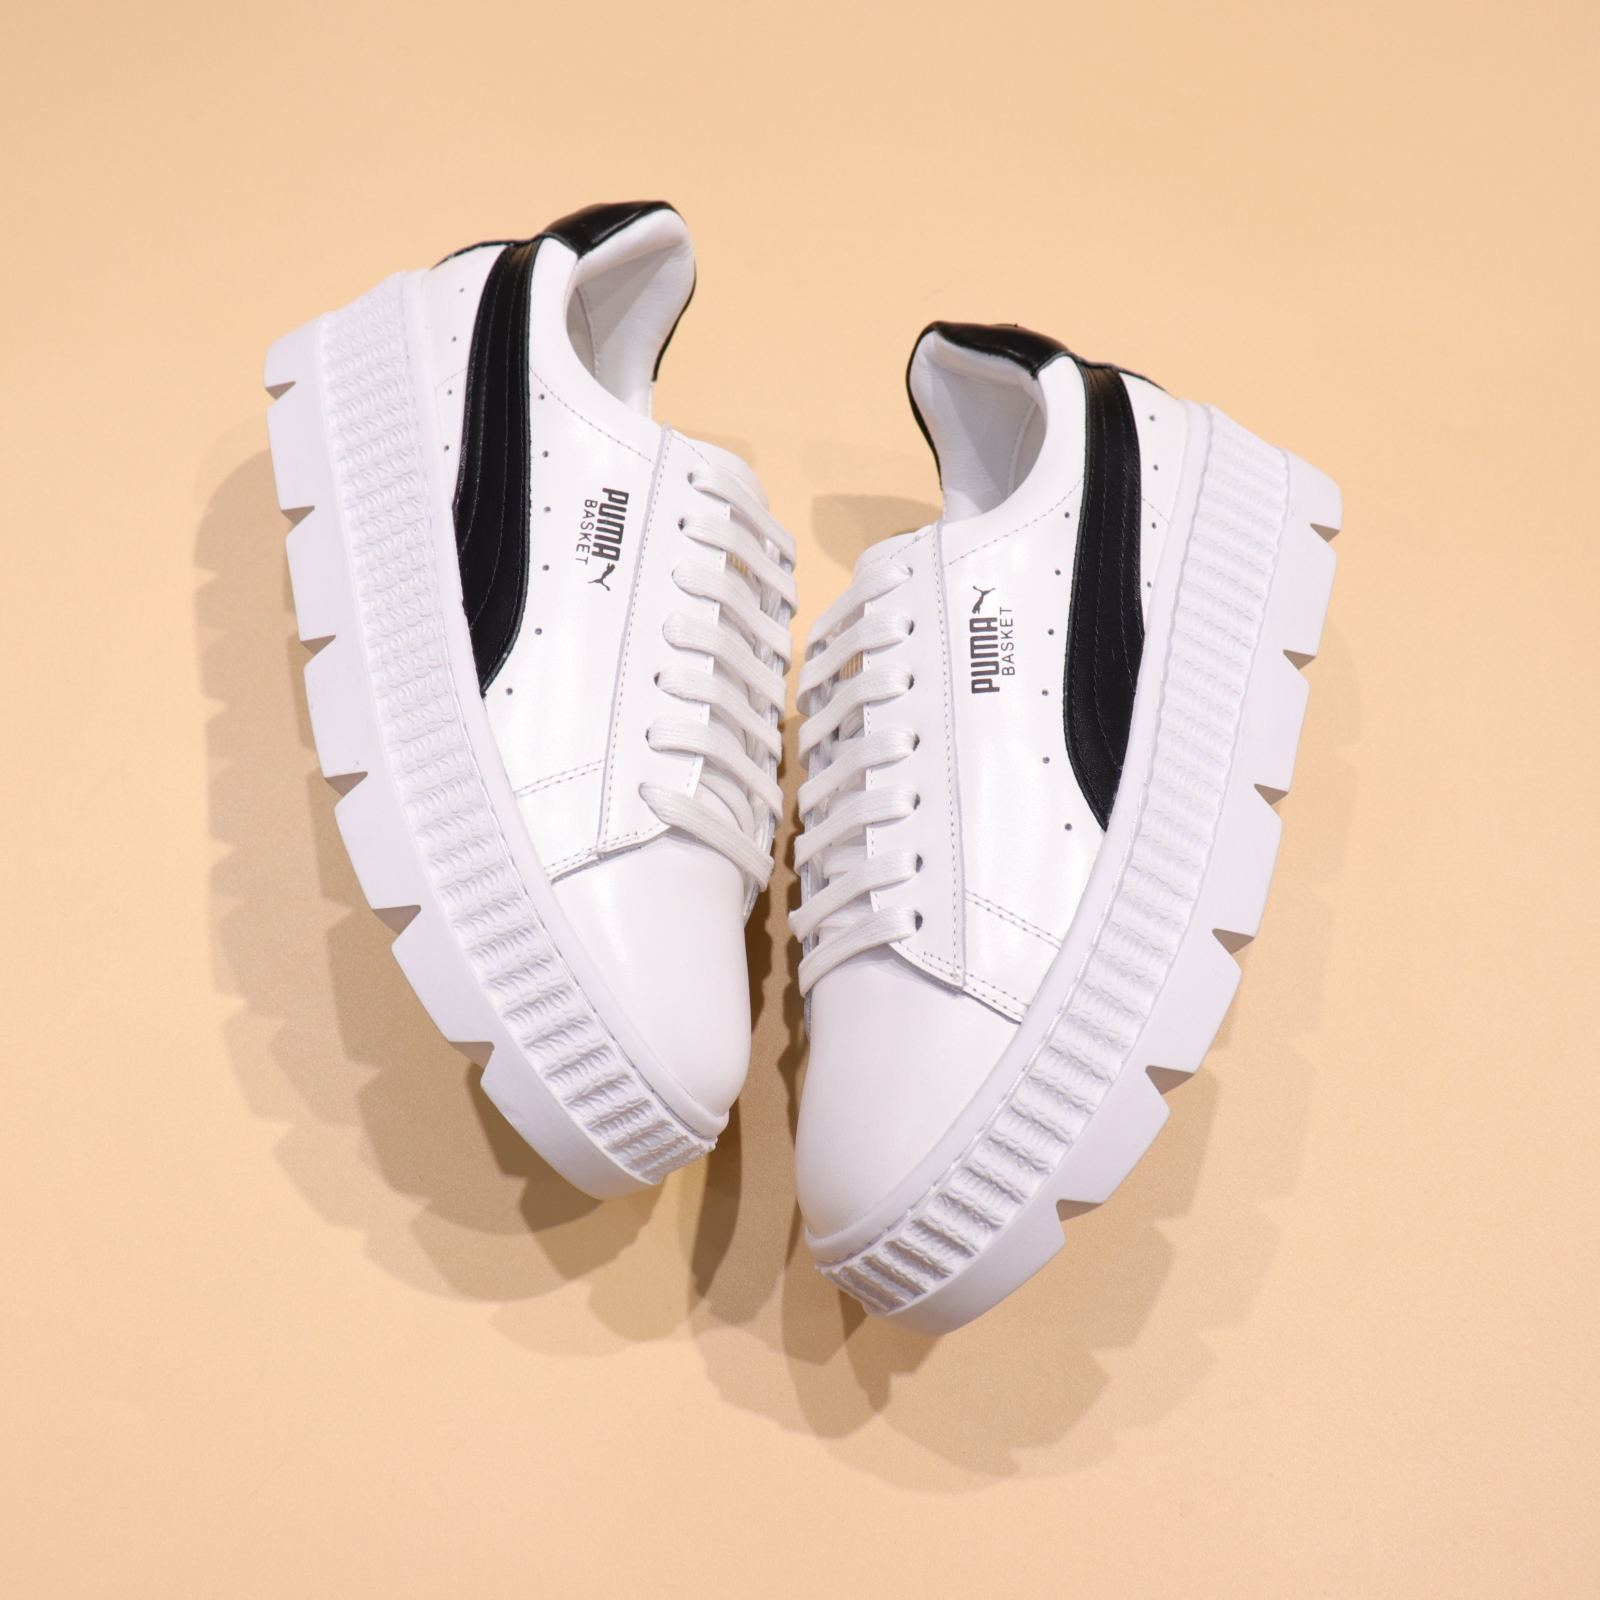 separation shoes e0741 1a416 Rihanna x Puma Fenty Cleated Creeper 'White-Black'